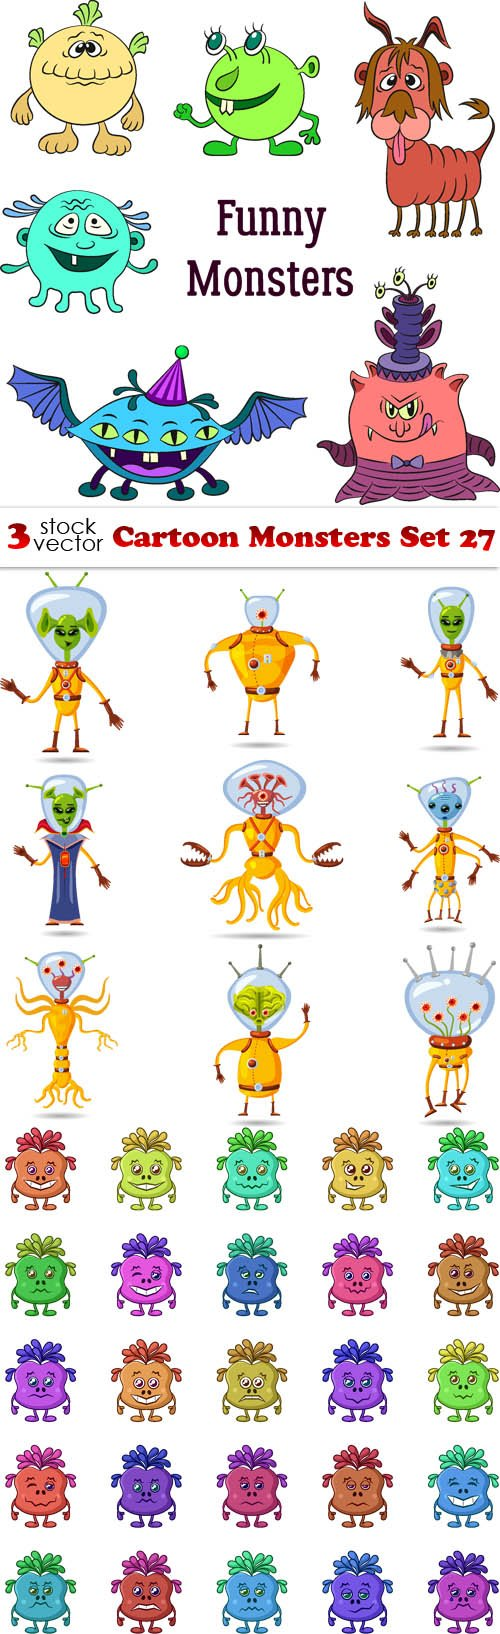 Vectors - Cartoon Monsters Set 27